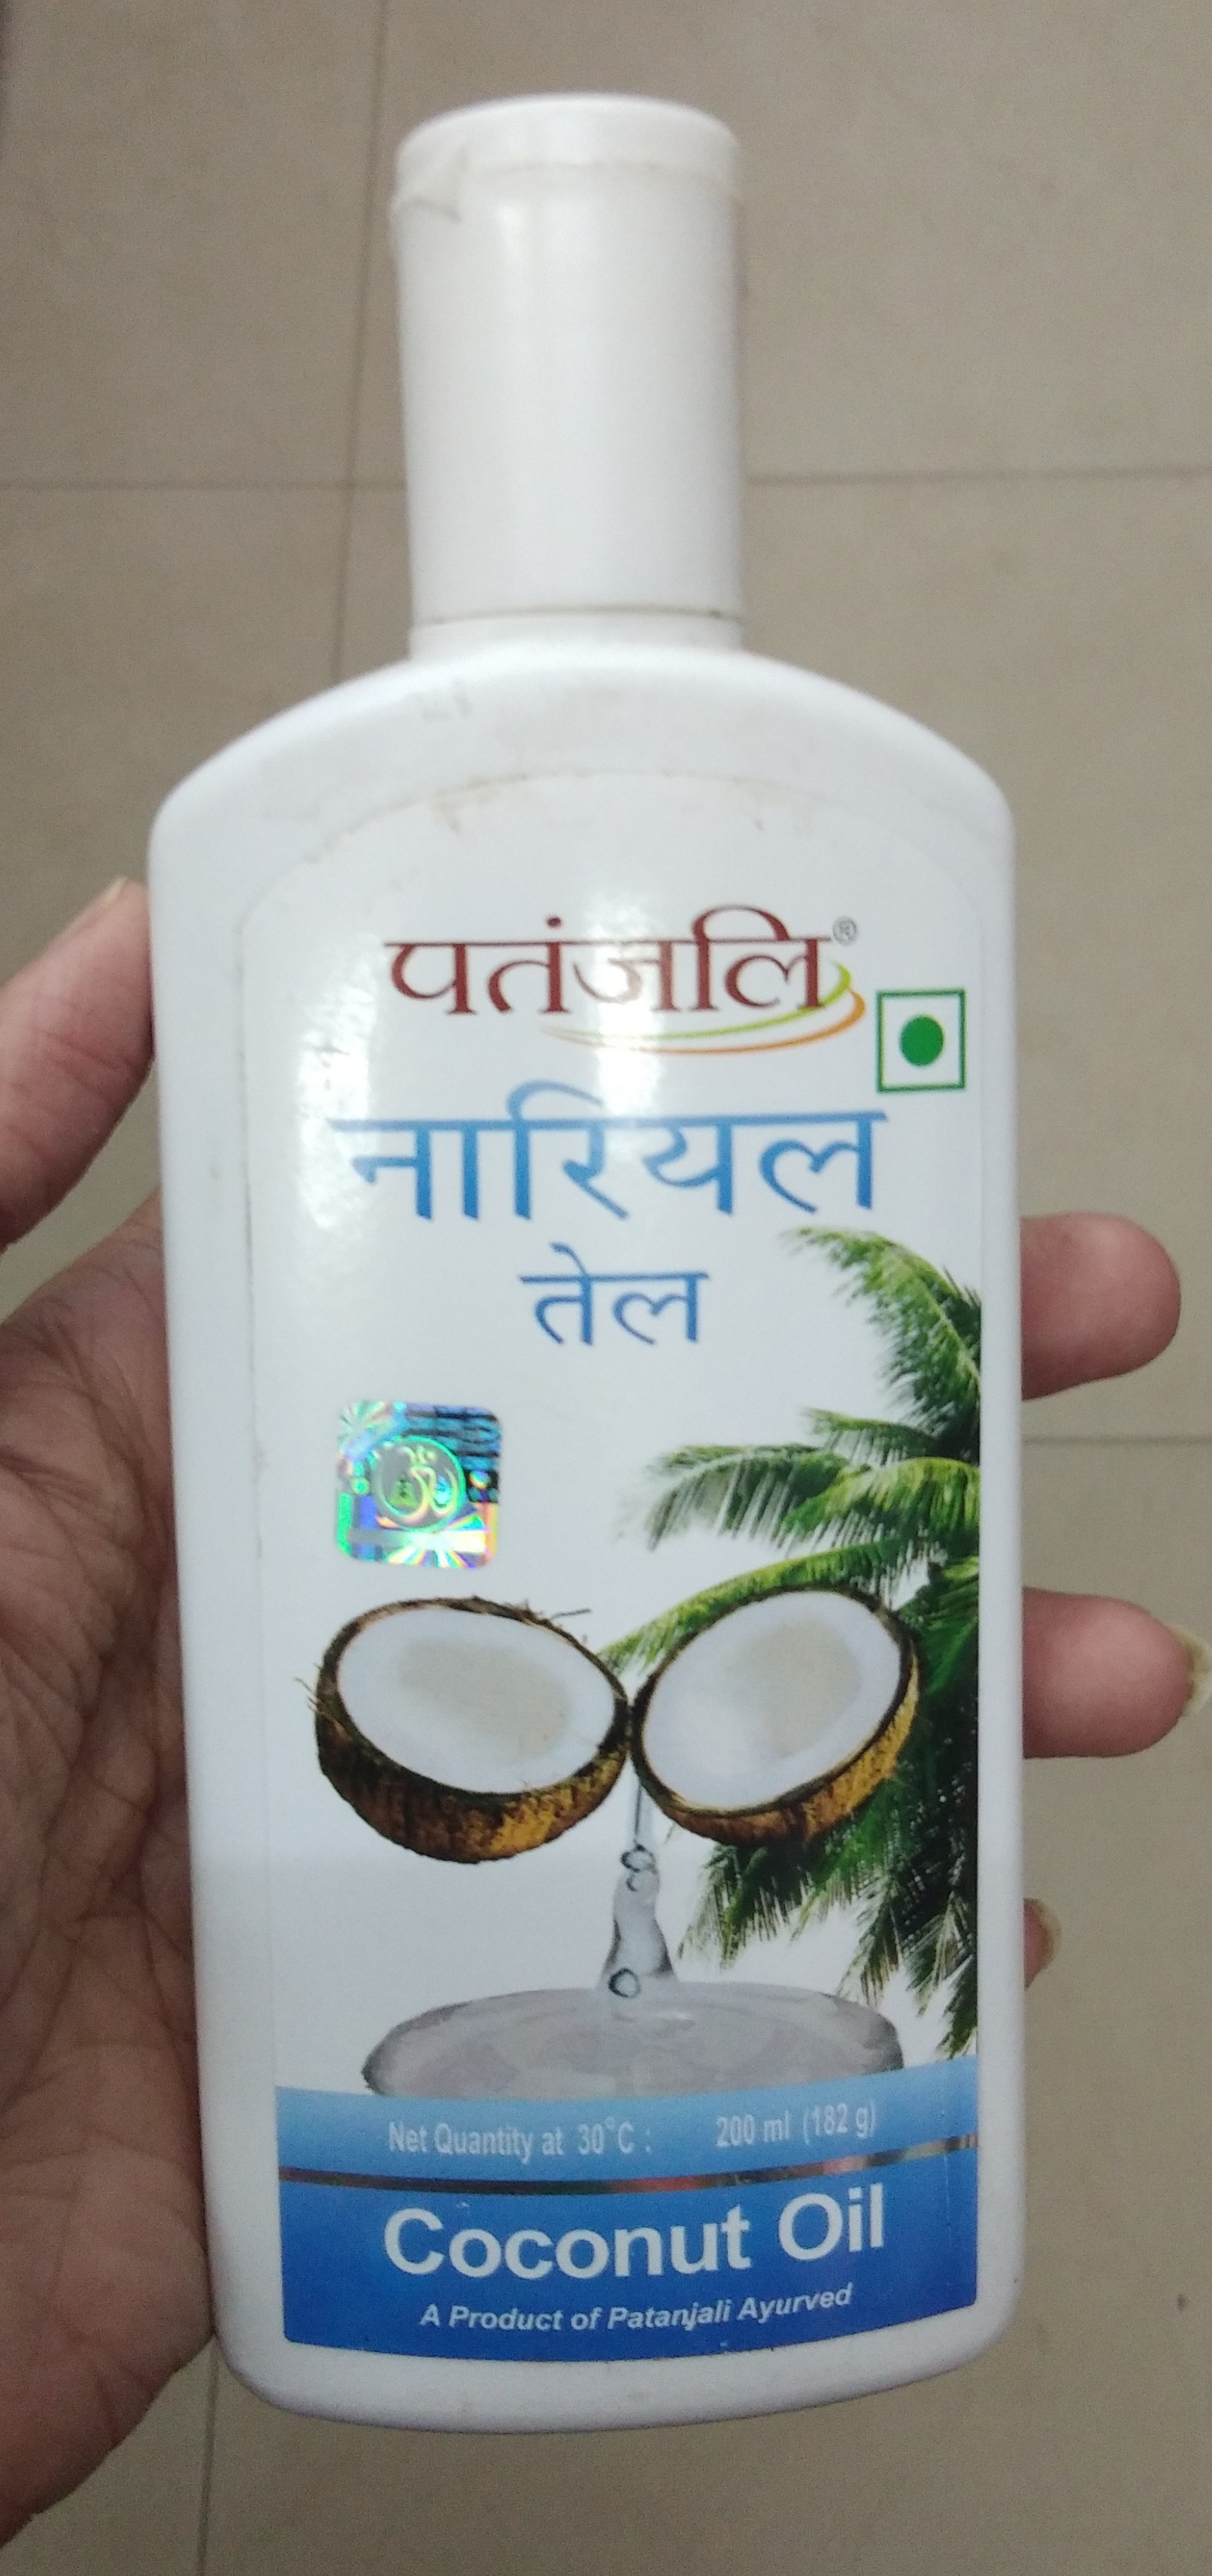 Patanjali Coconut Oil-Pretty good-By Nasreen-1